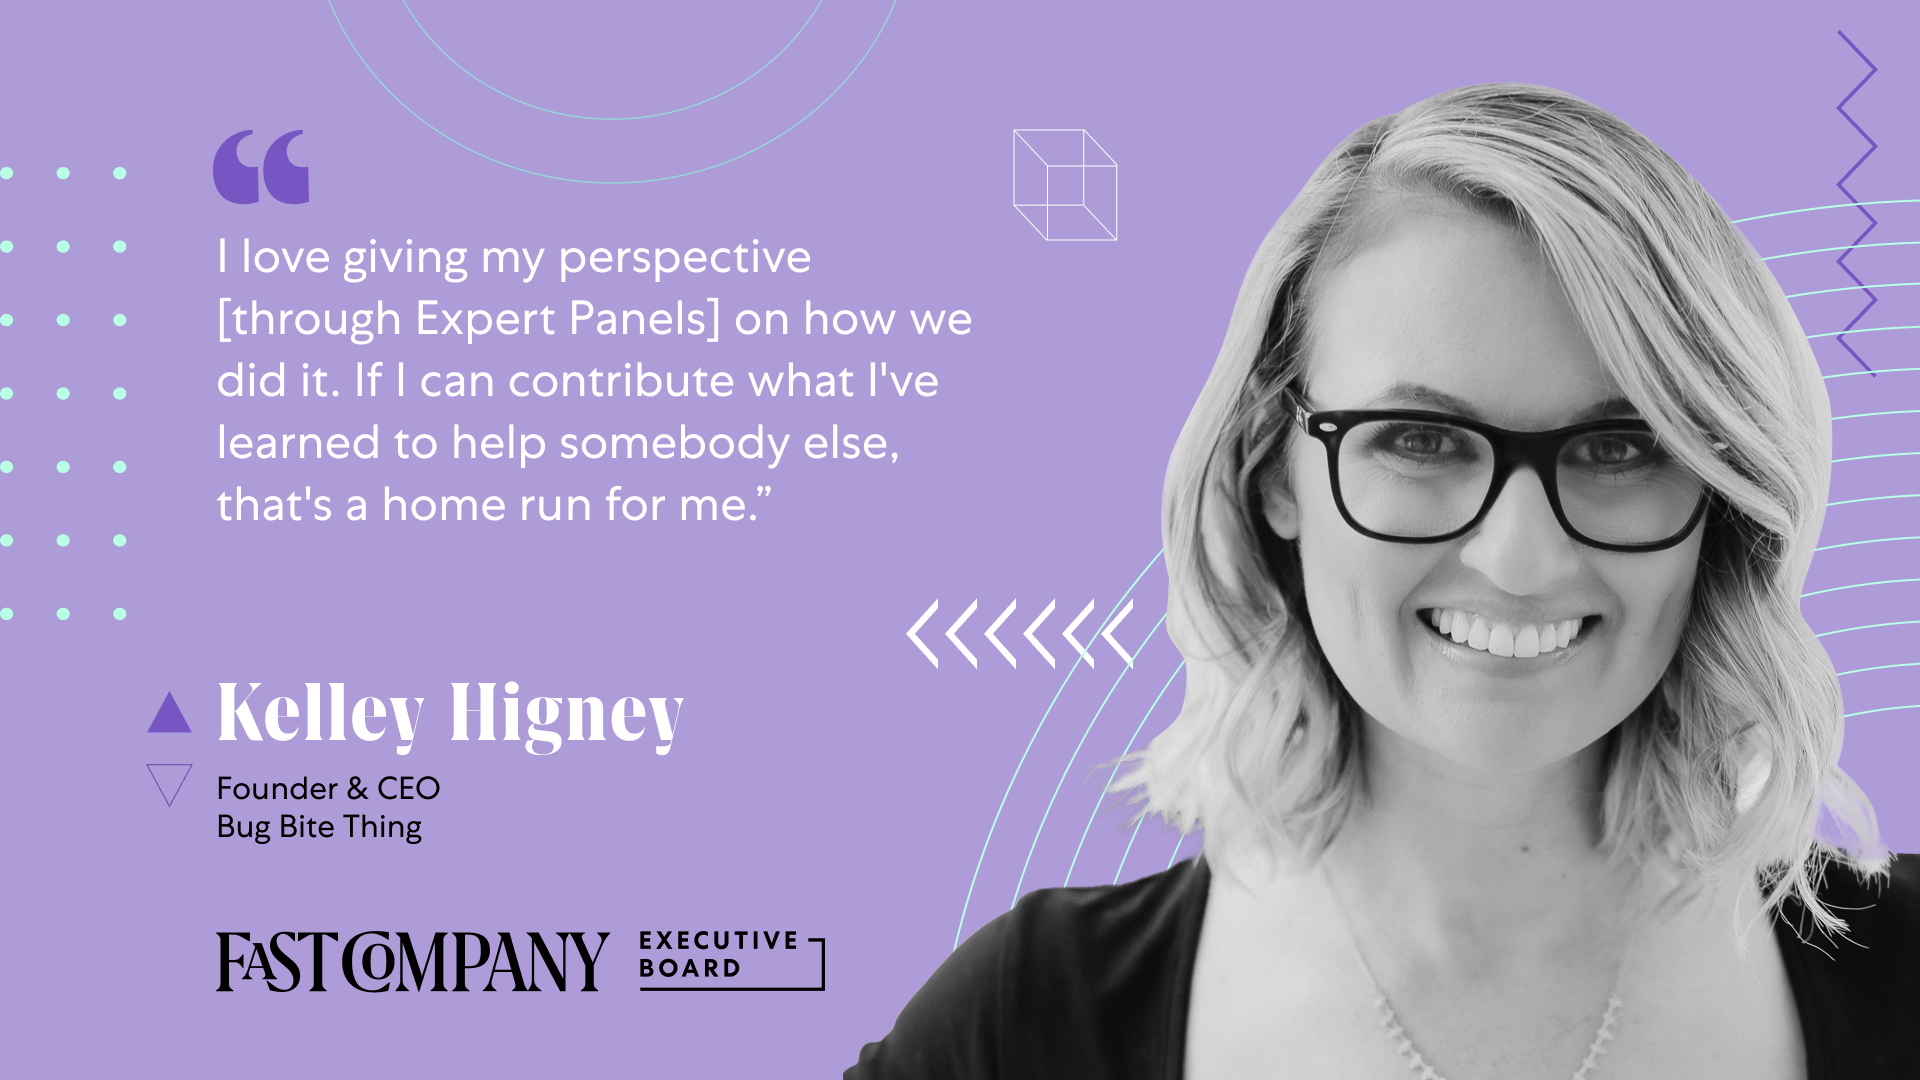 Through Fast Company Executive Board, Kelley Higney Shares Her Perspective to Help Others